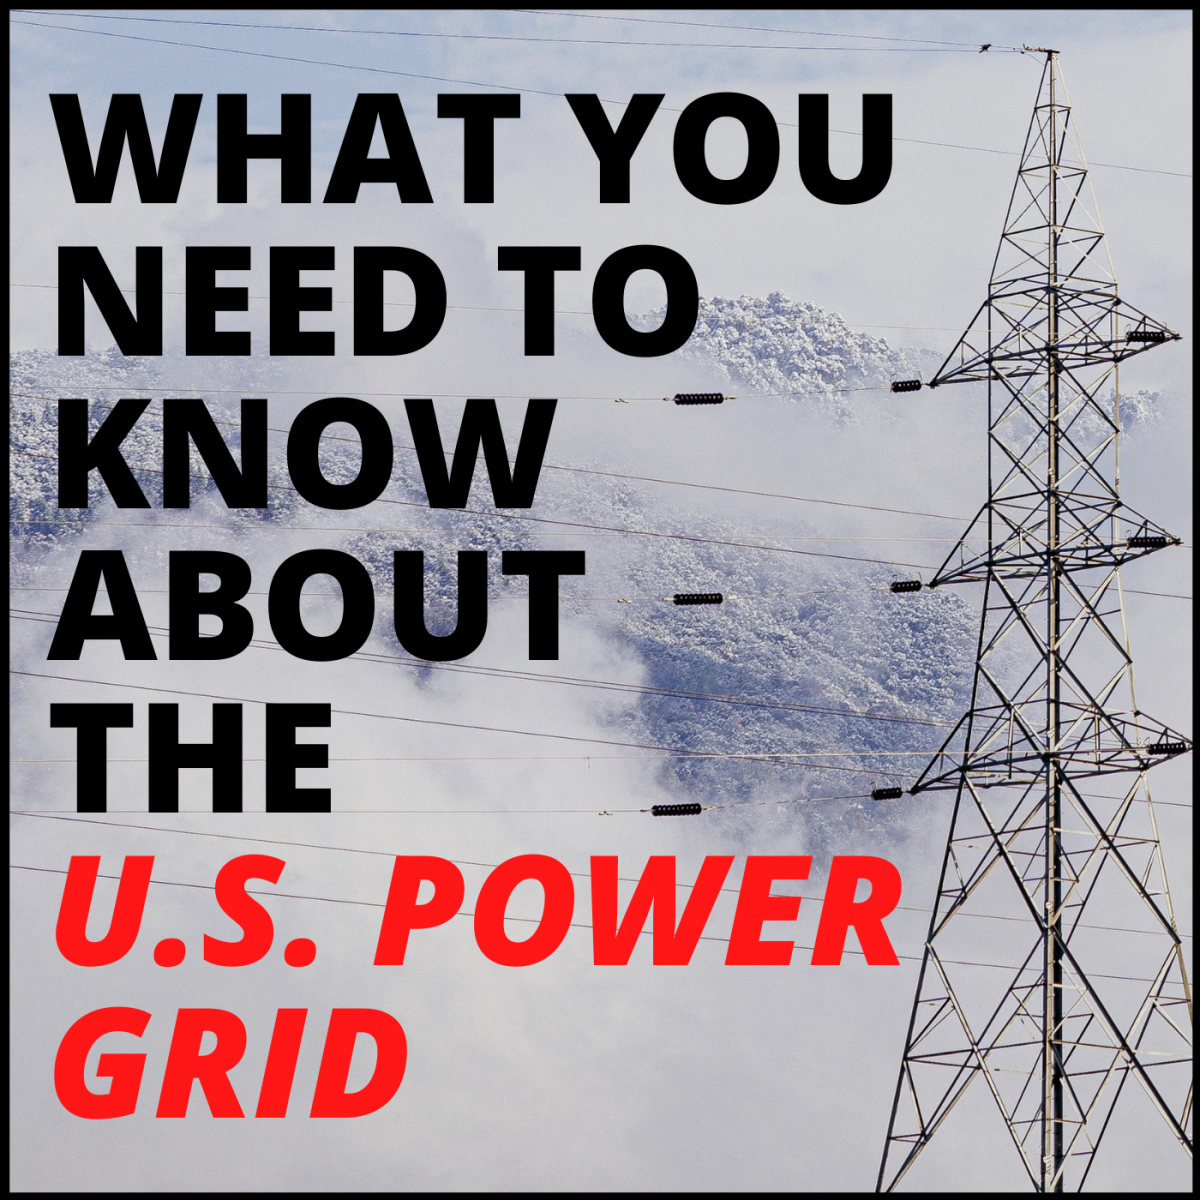 Is the U.S. power grid as safe as it should be?